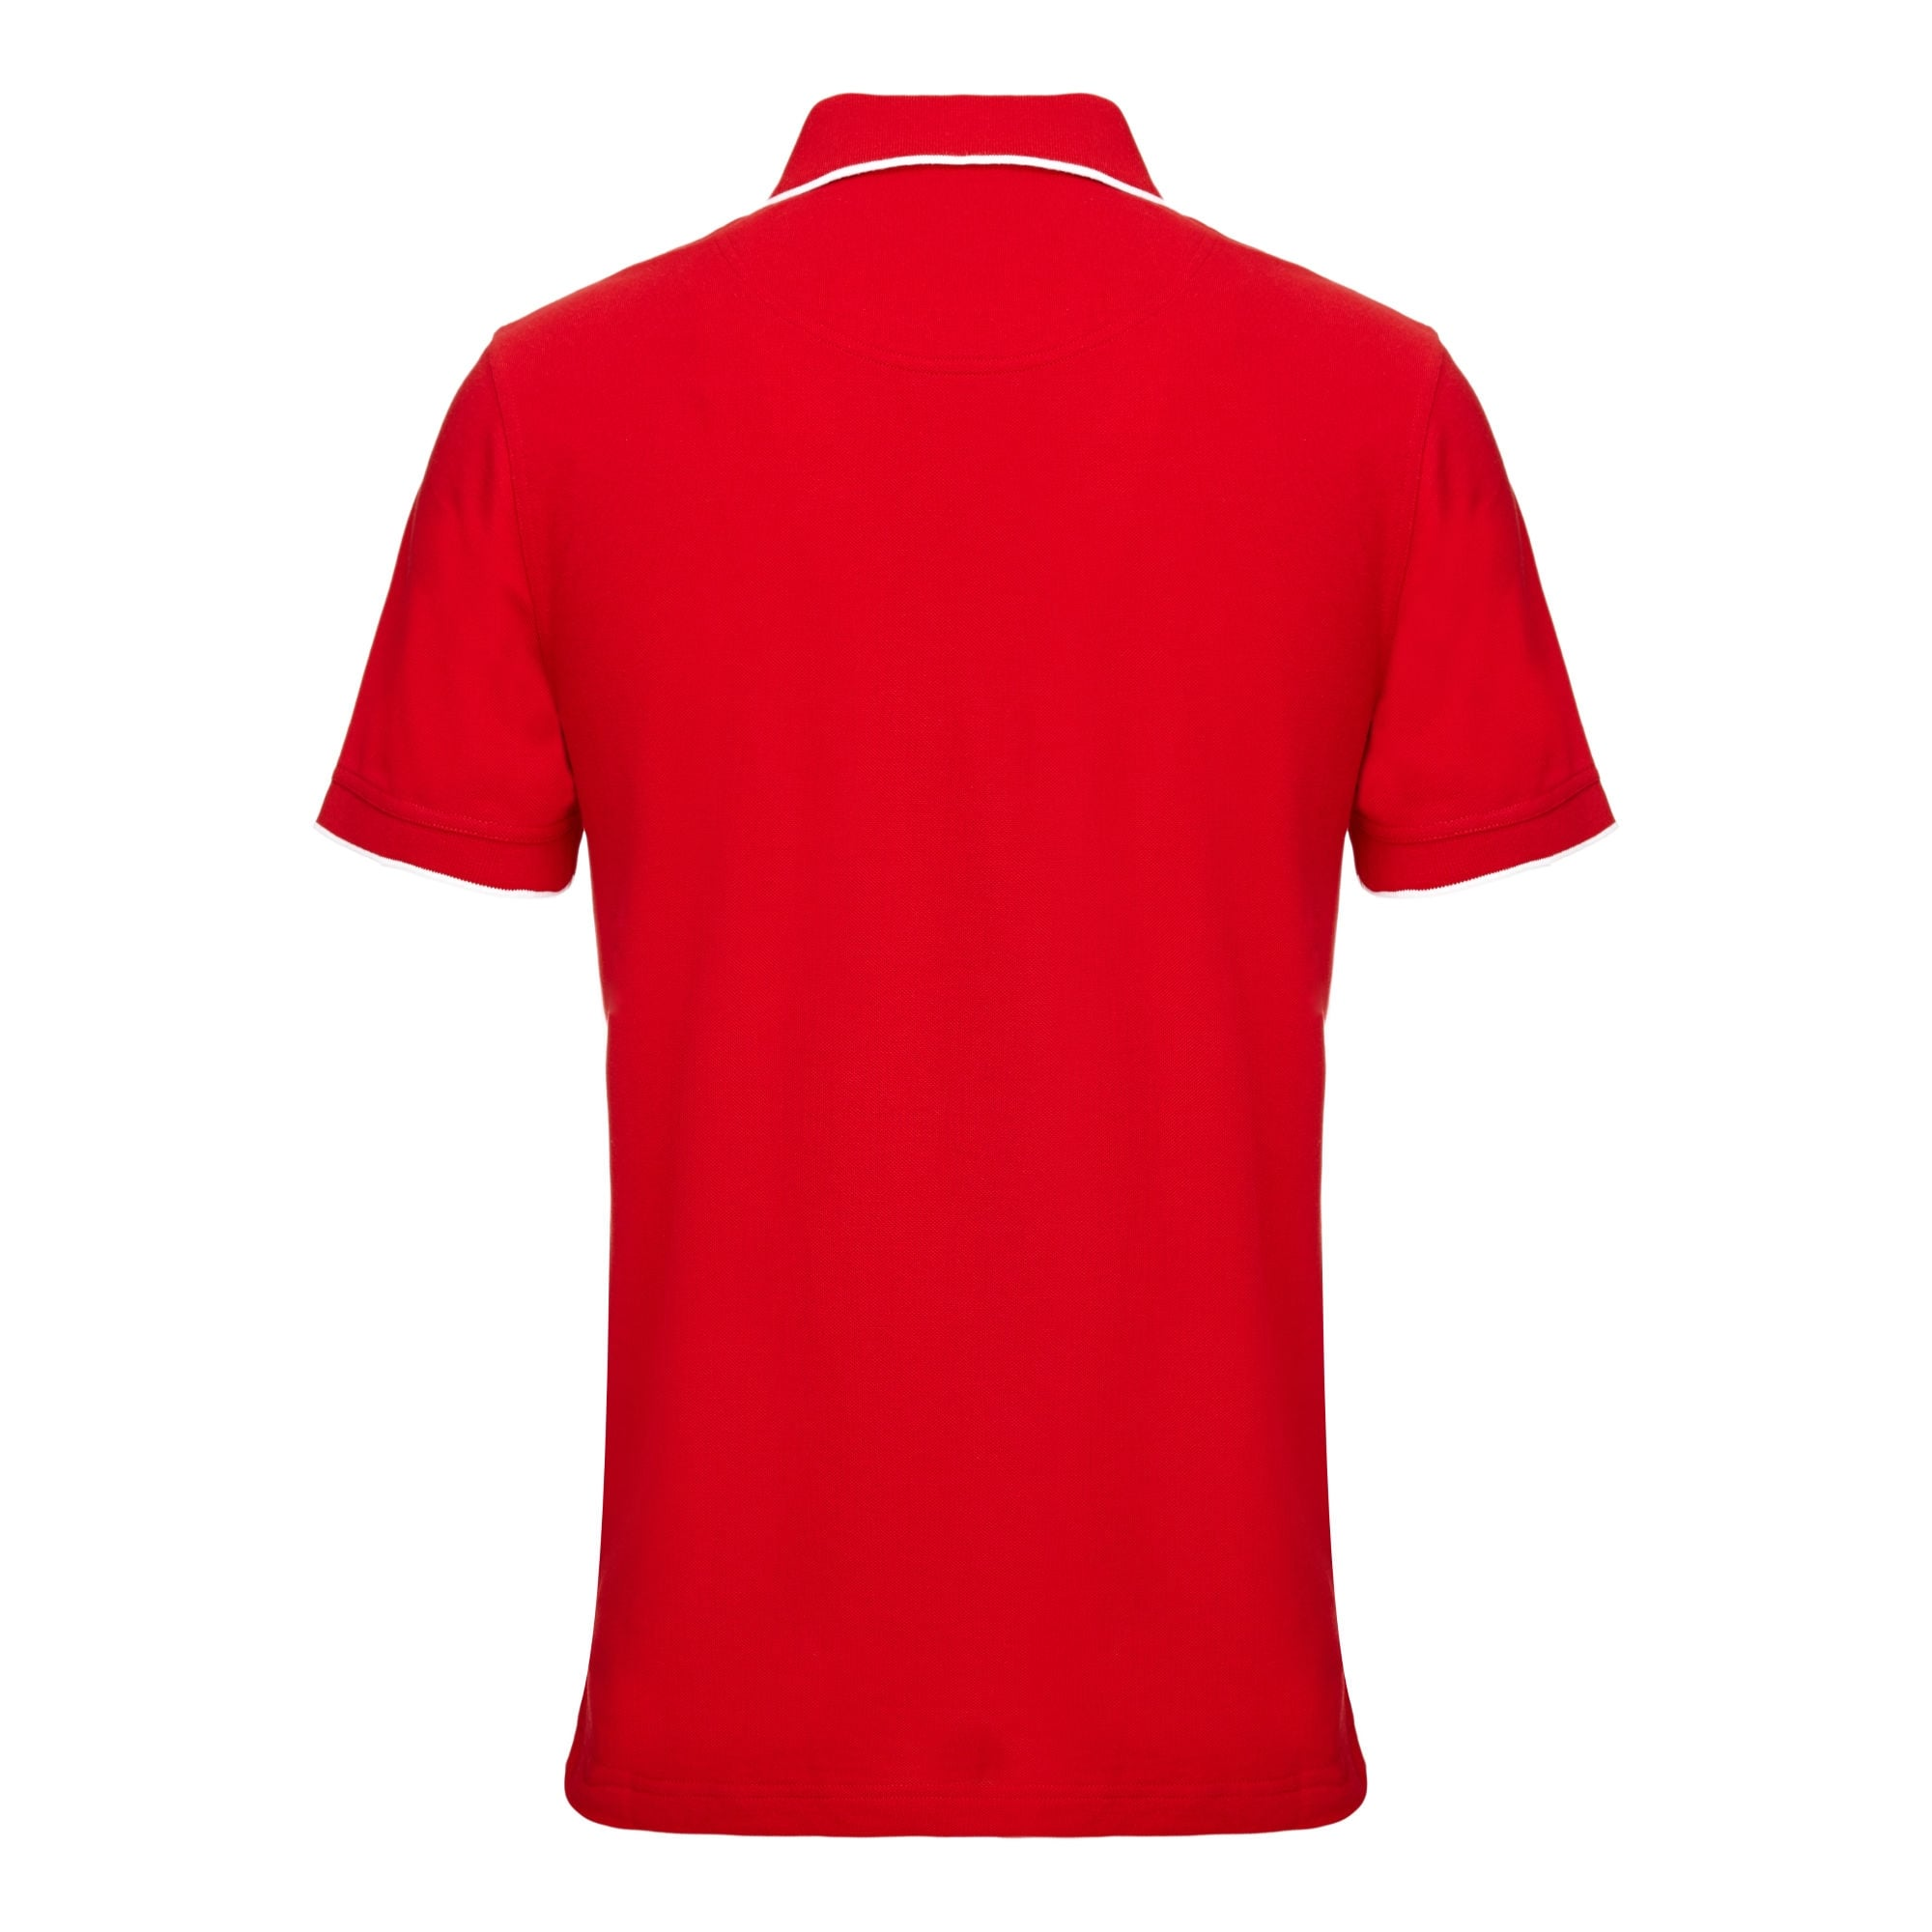 Official Lions Tour 2017 Red Embroidered Supporters Polo